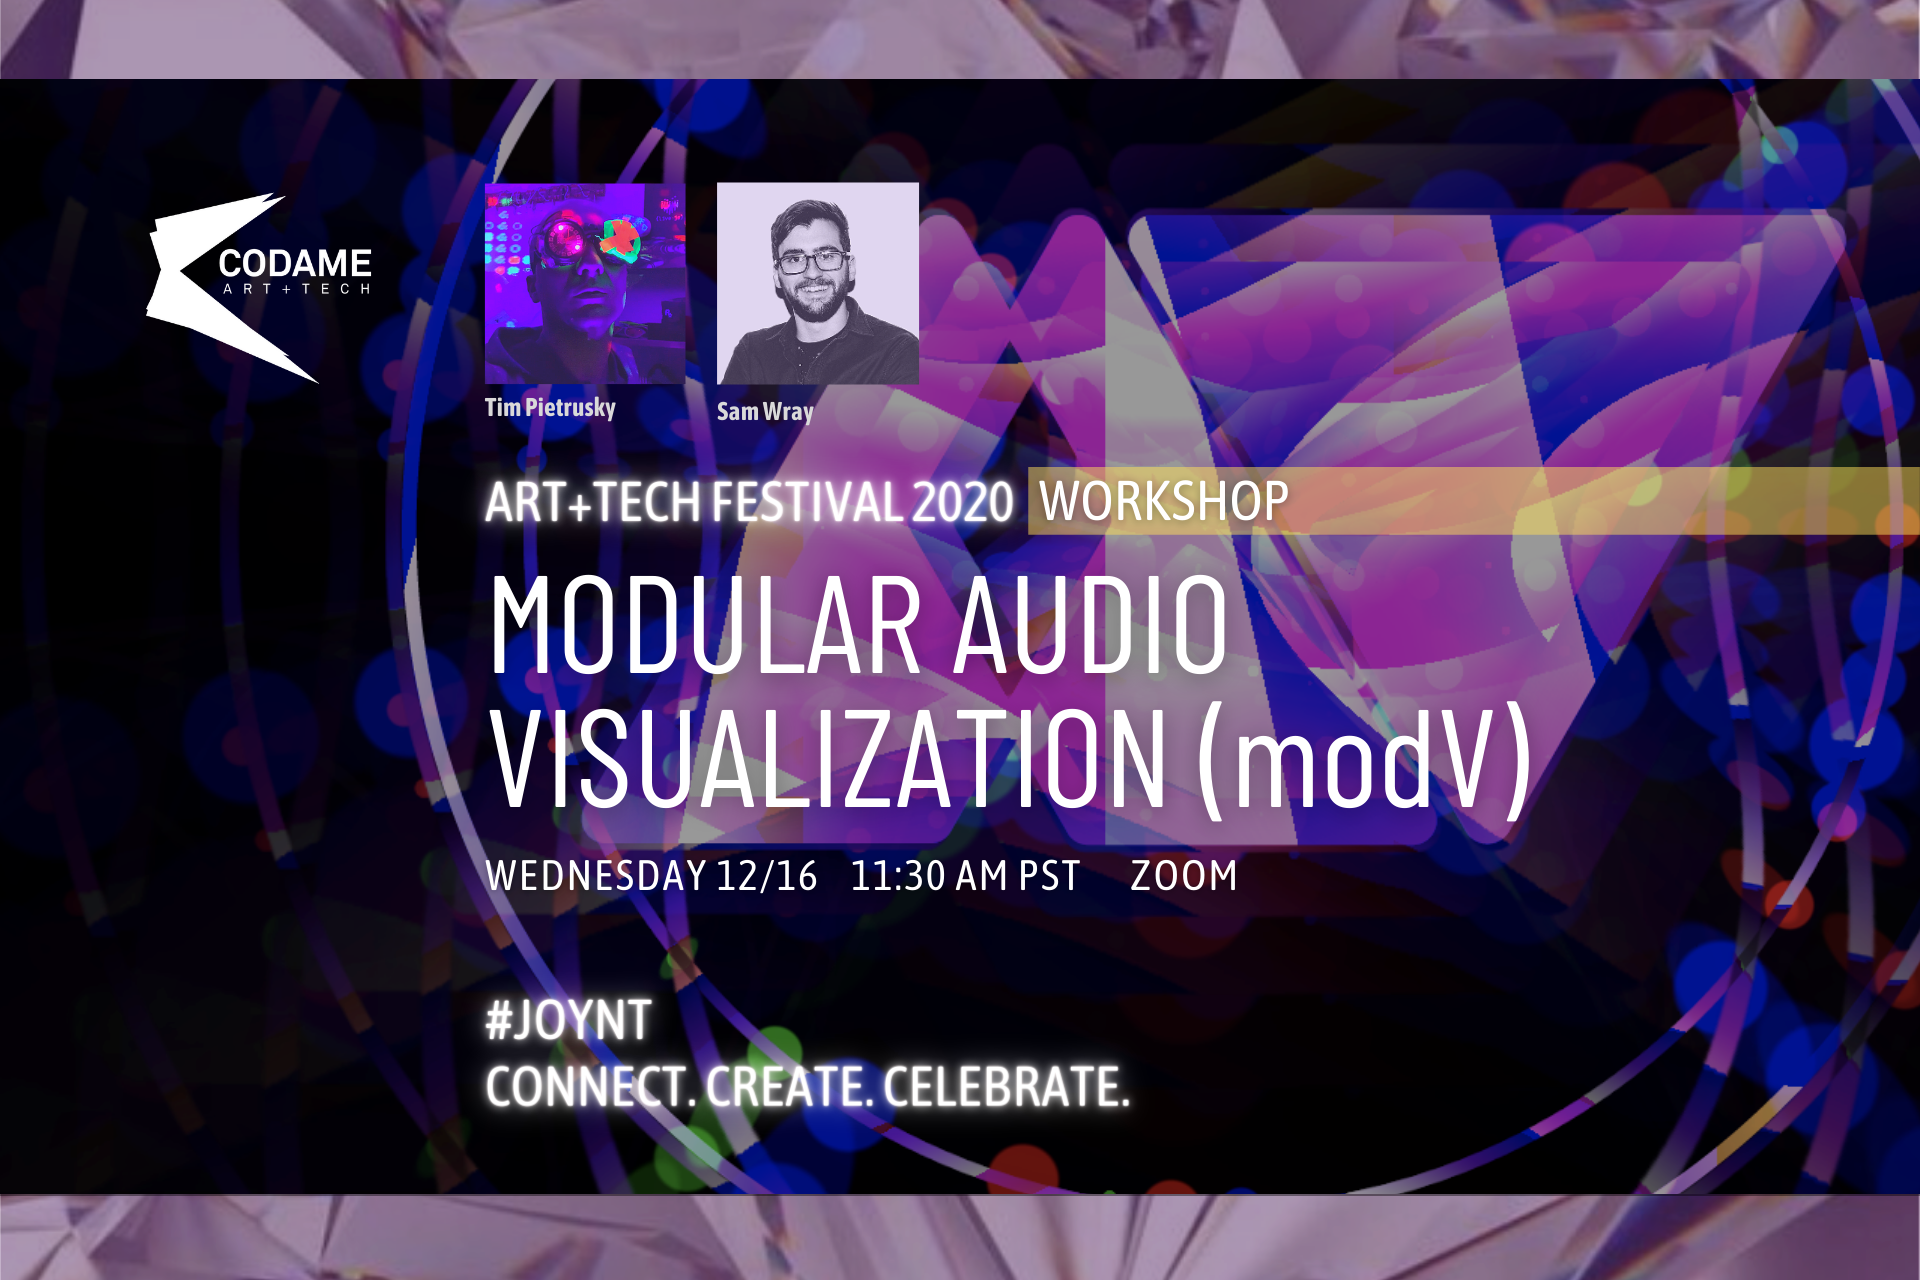 Modular Audio Visualisation with modV